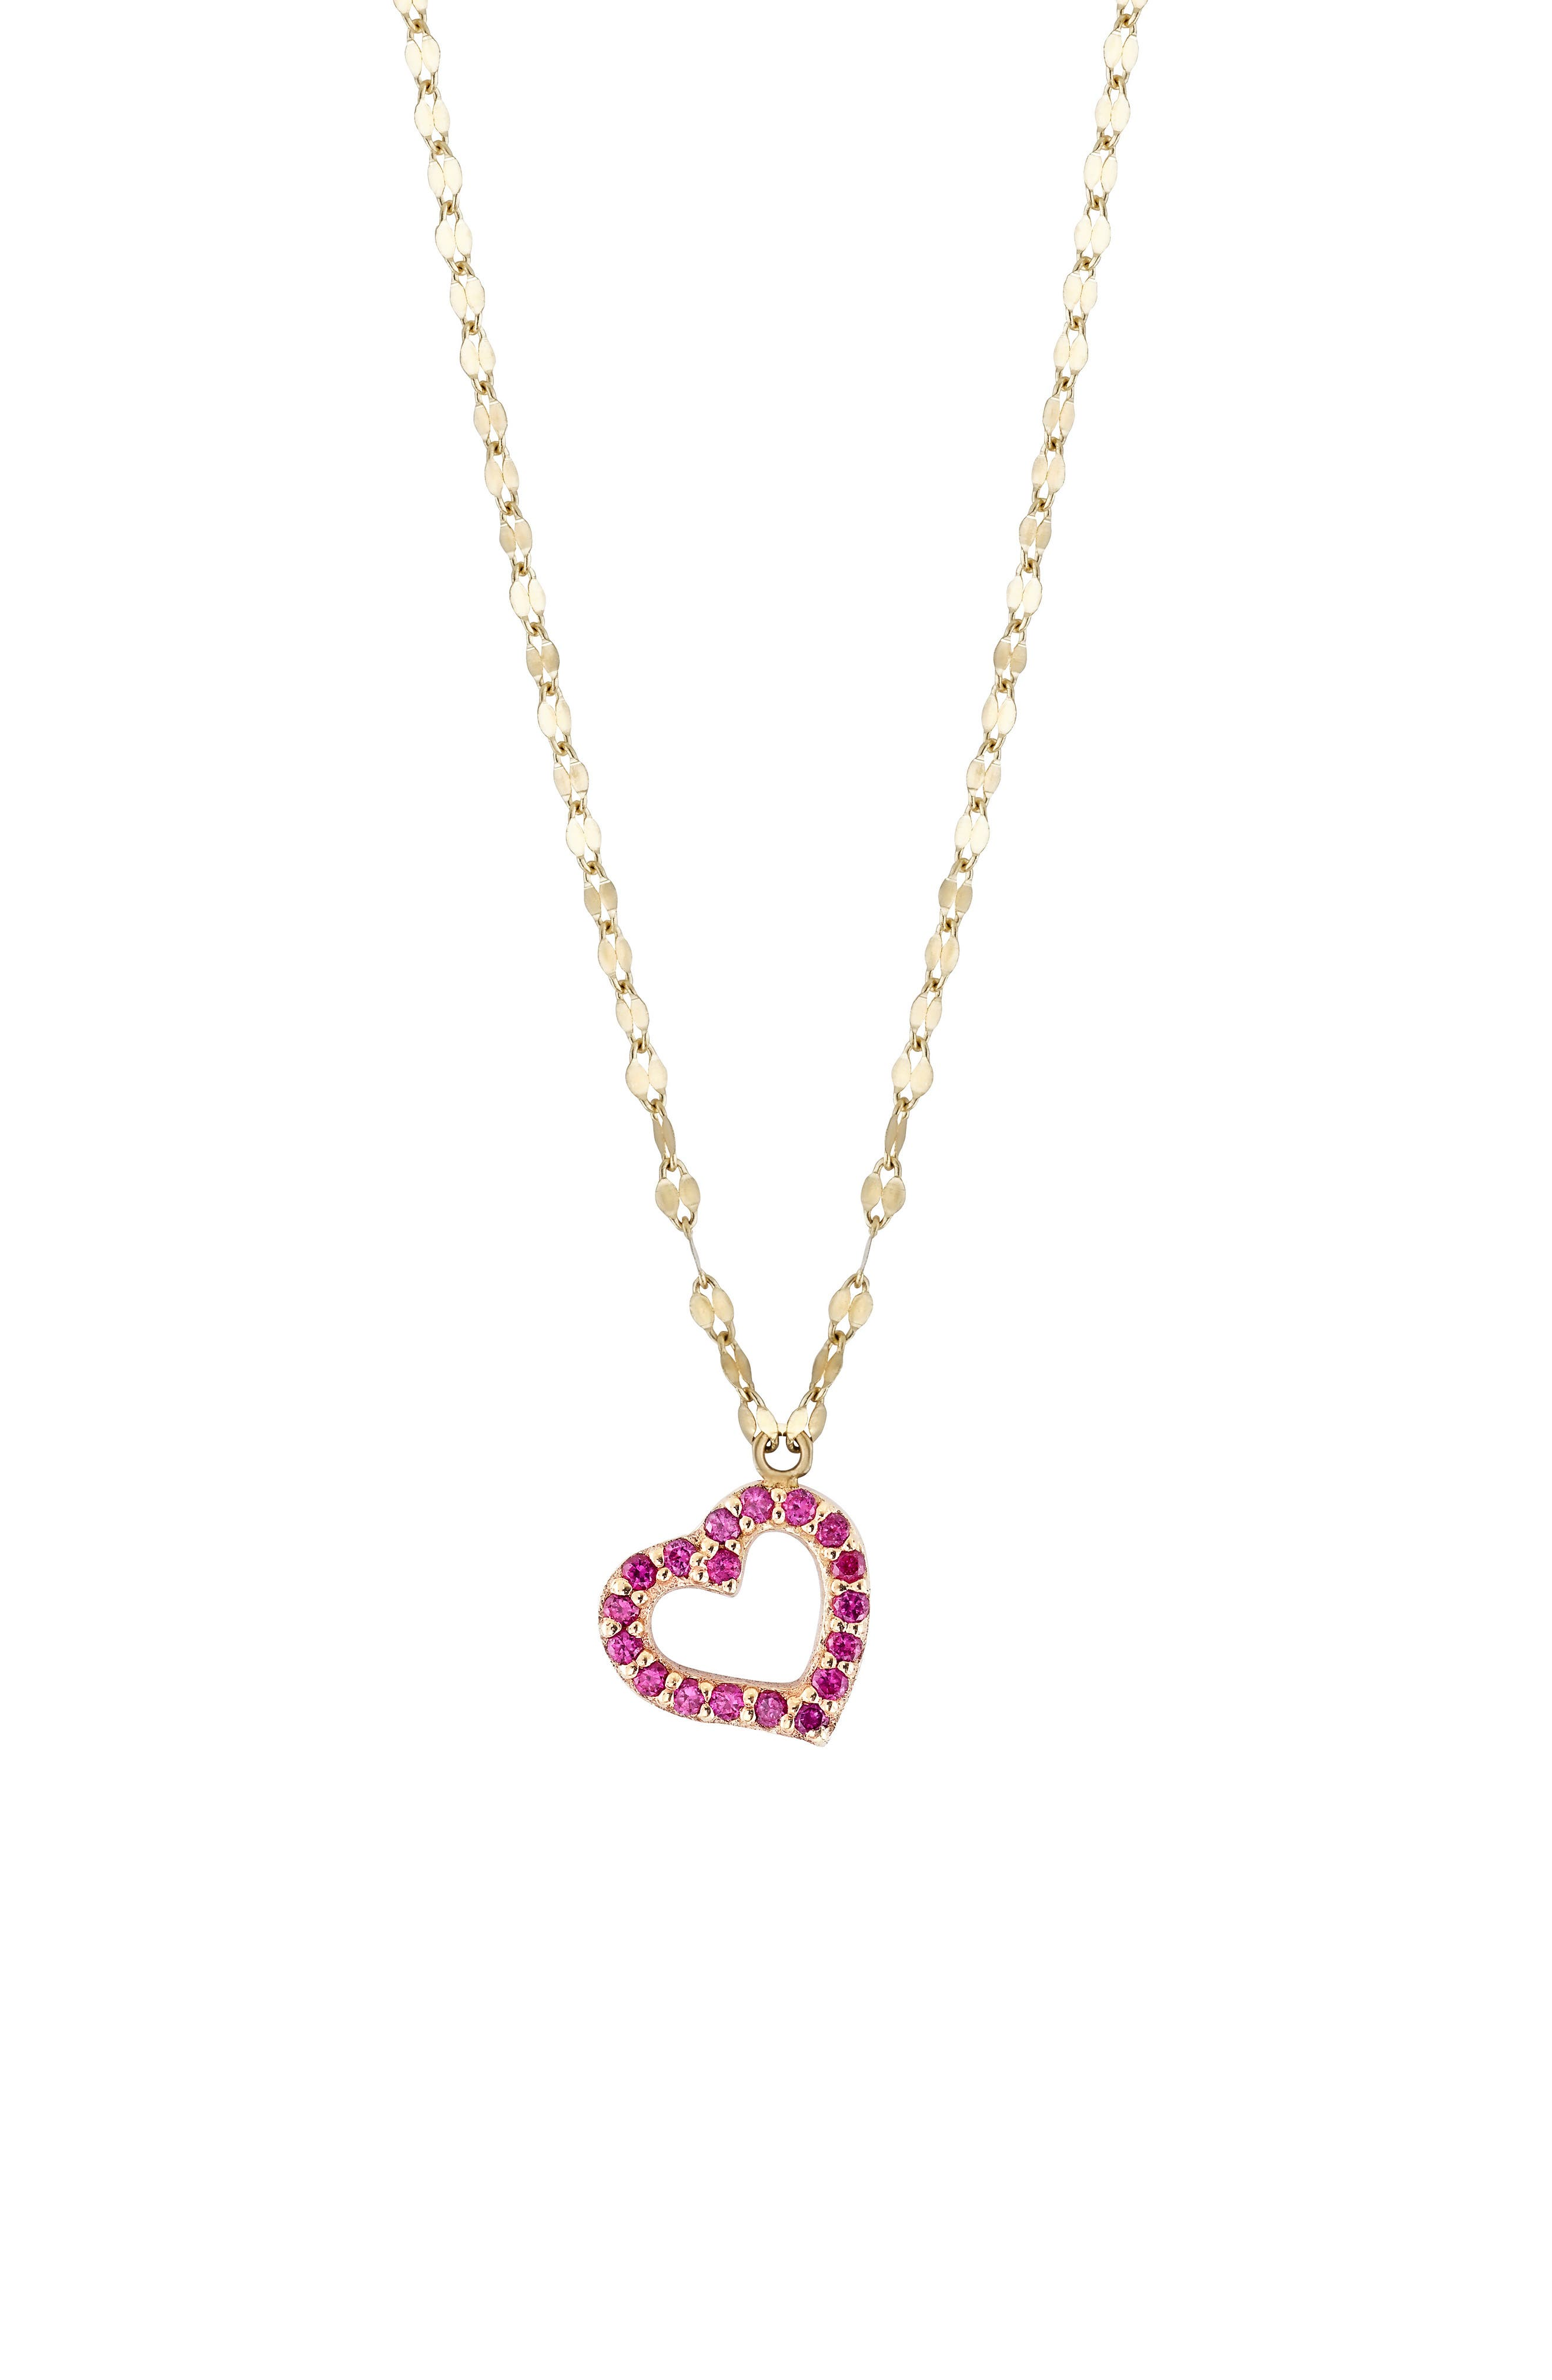 Alternate Image 1 Selected - Lana Girl by Lana Jewelry Mini Heart Pendant Necklace (Girls)